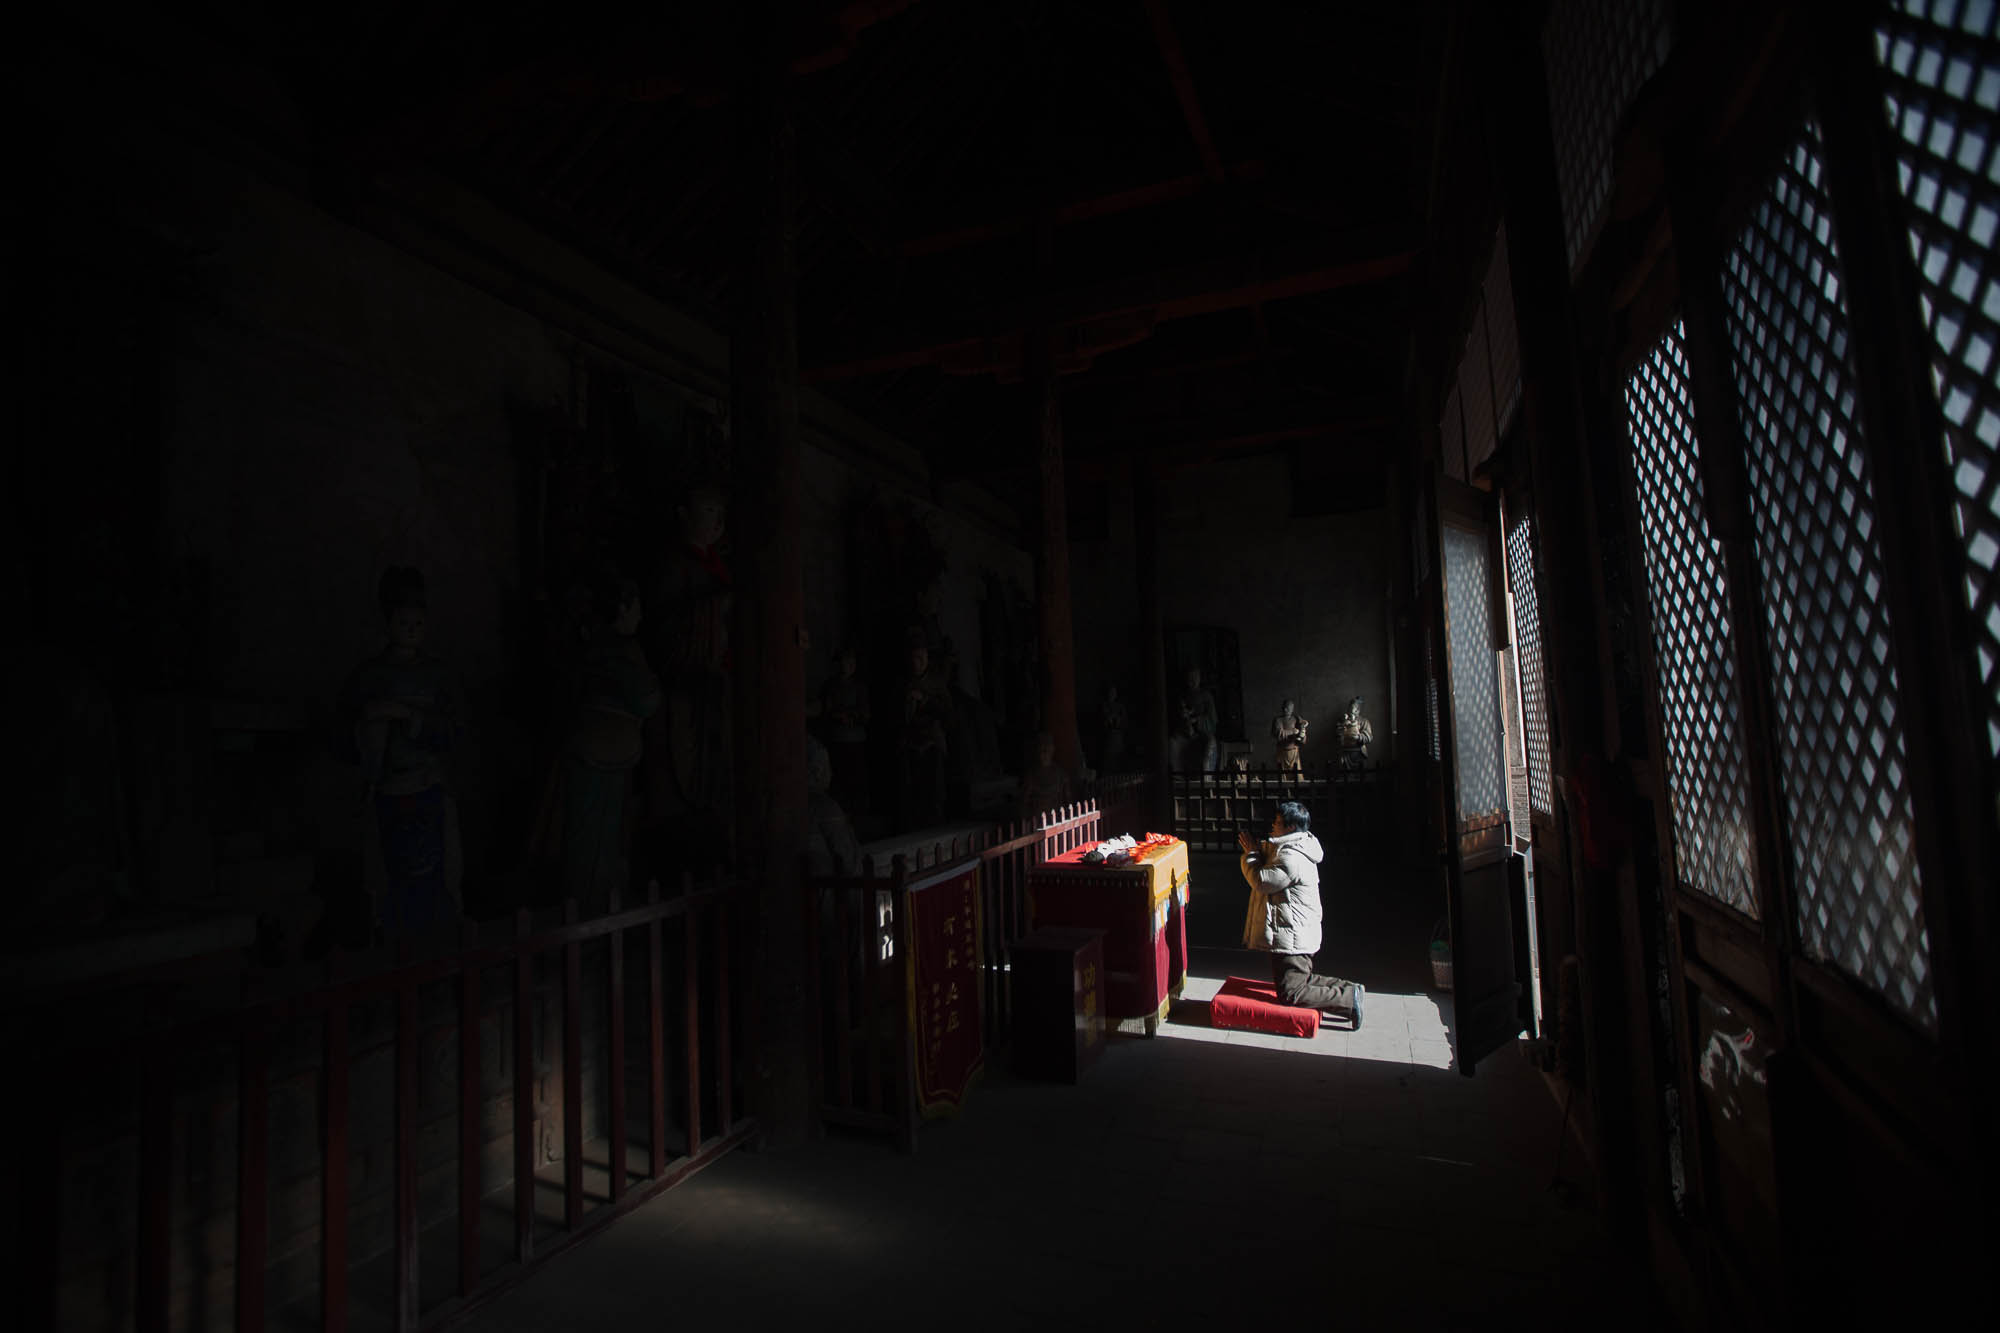 within Shuanglin Temple